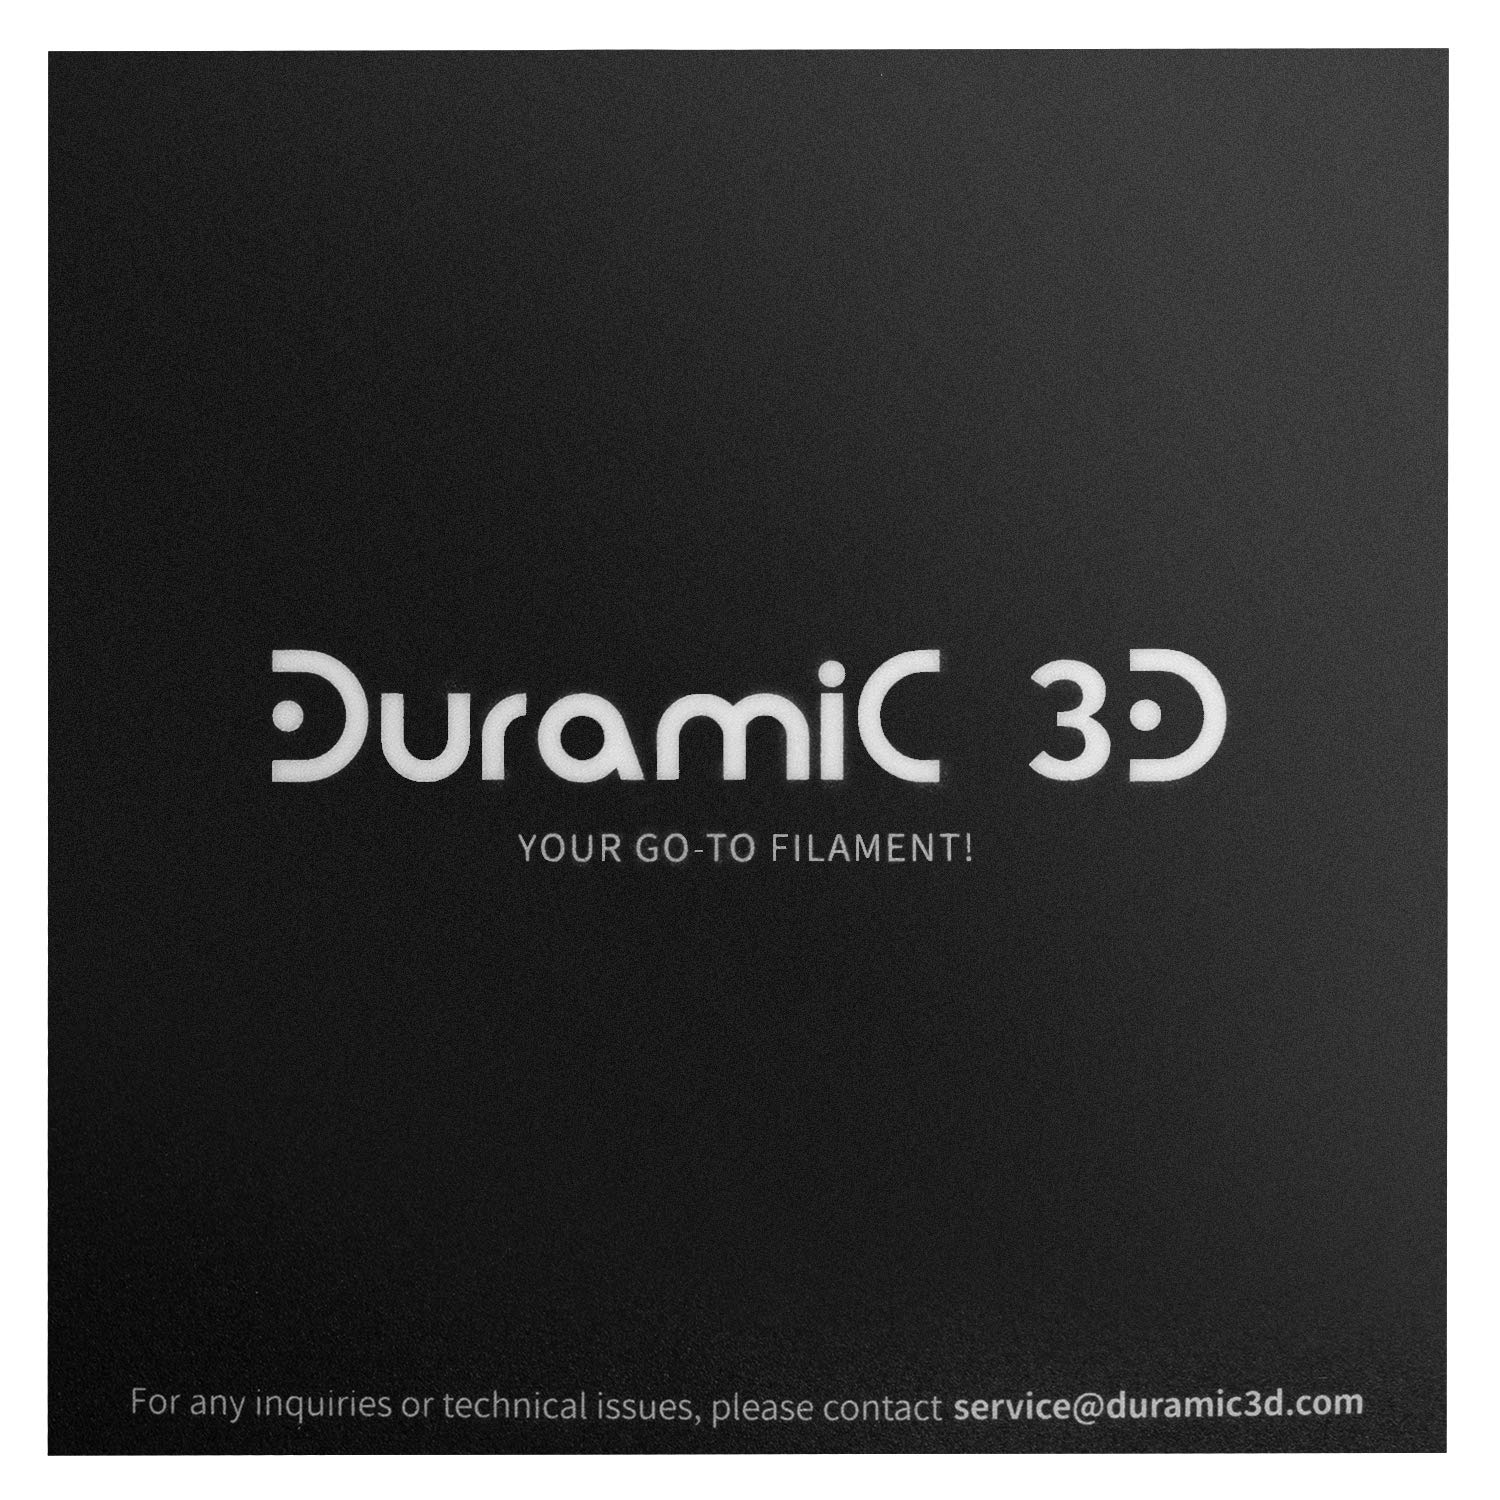 200x200mm 1 Pack DURAMIC 3D Printing Build Surface 7.87 x7.87in Reusable Printing Build Plate Sheet Sticker Black for 3D Printer Heated Bed